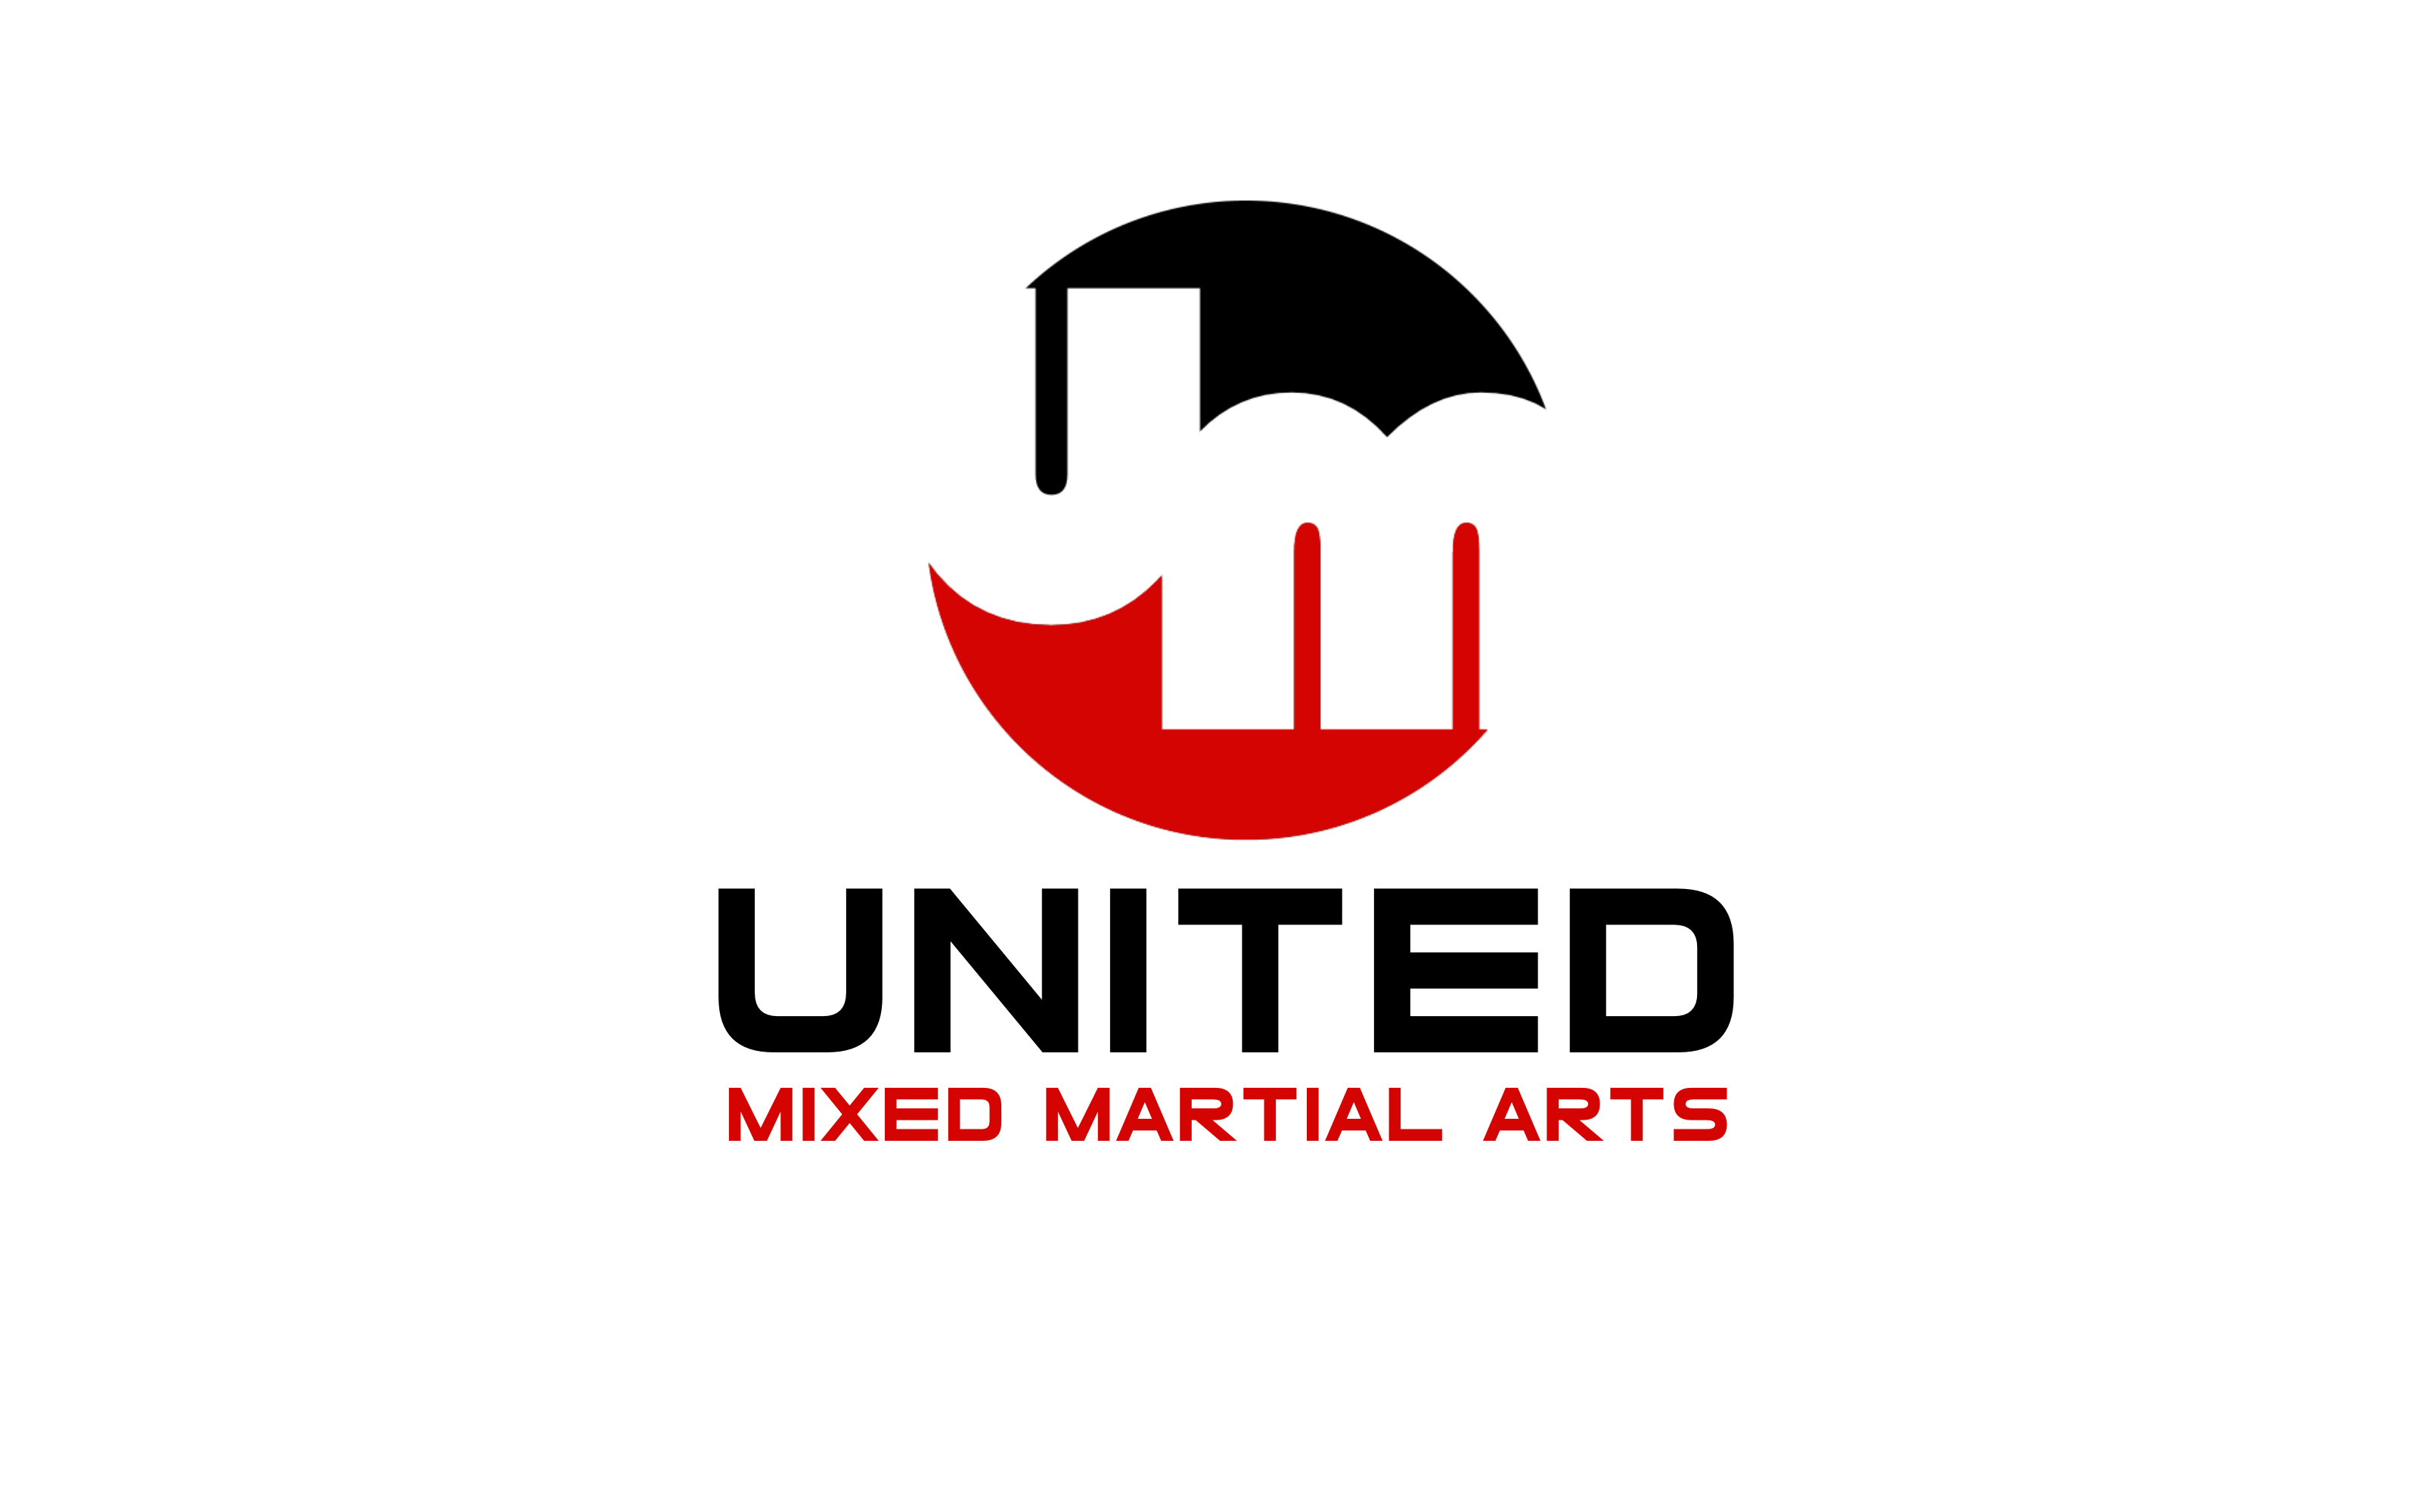 Logo Design by Roberto Bassi - Entry No. 113 in the Logo Design Contest Artistic Logo Design for United Mixed Martial Arts Ltd..